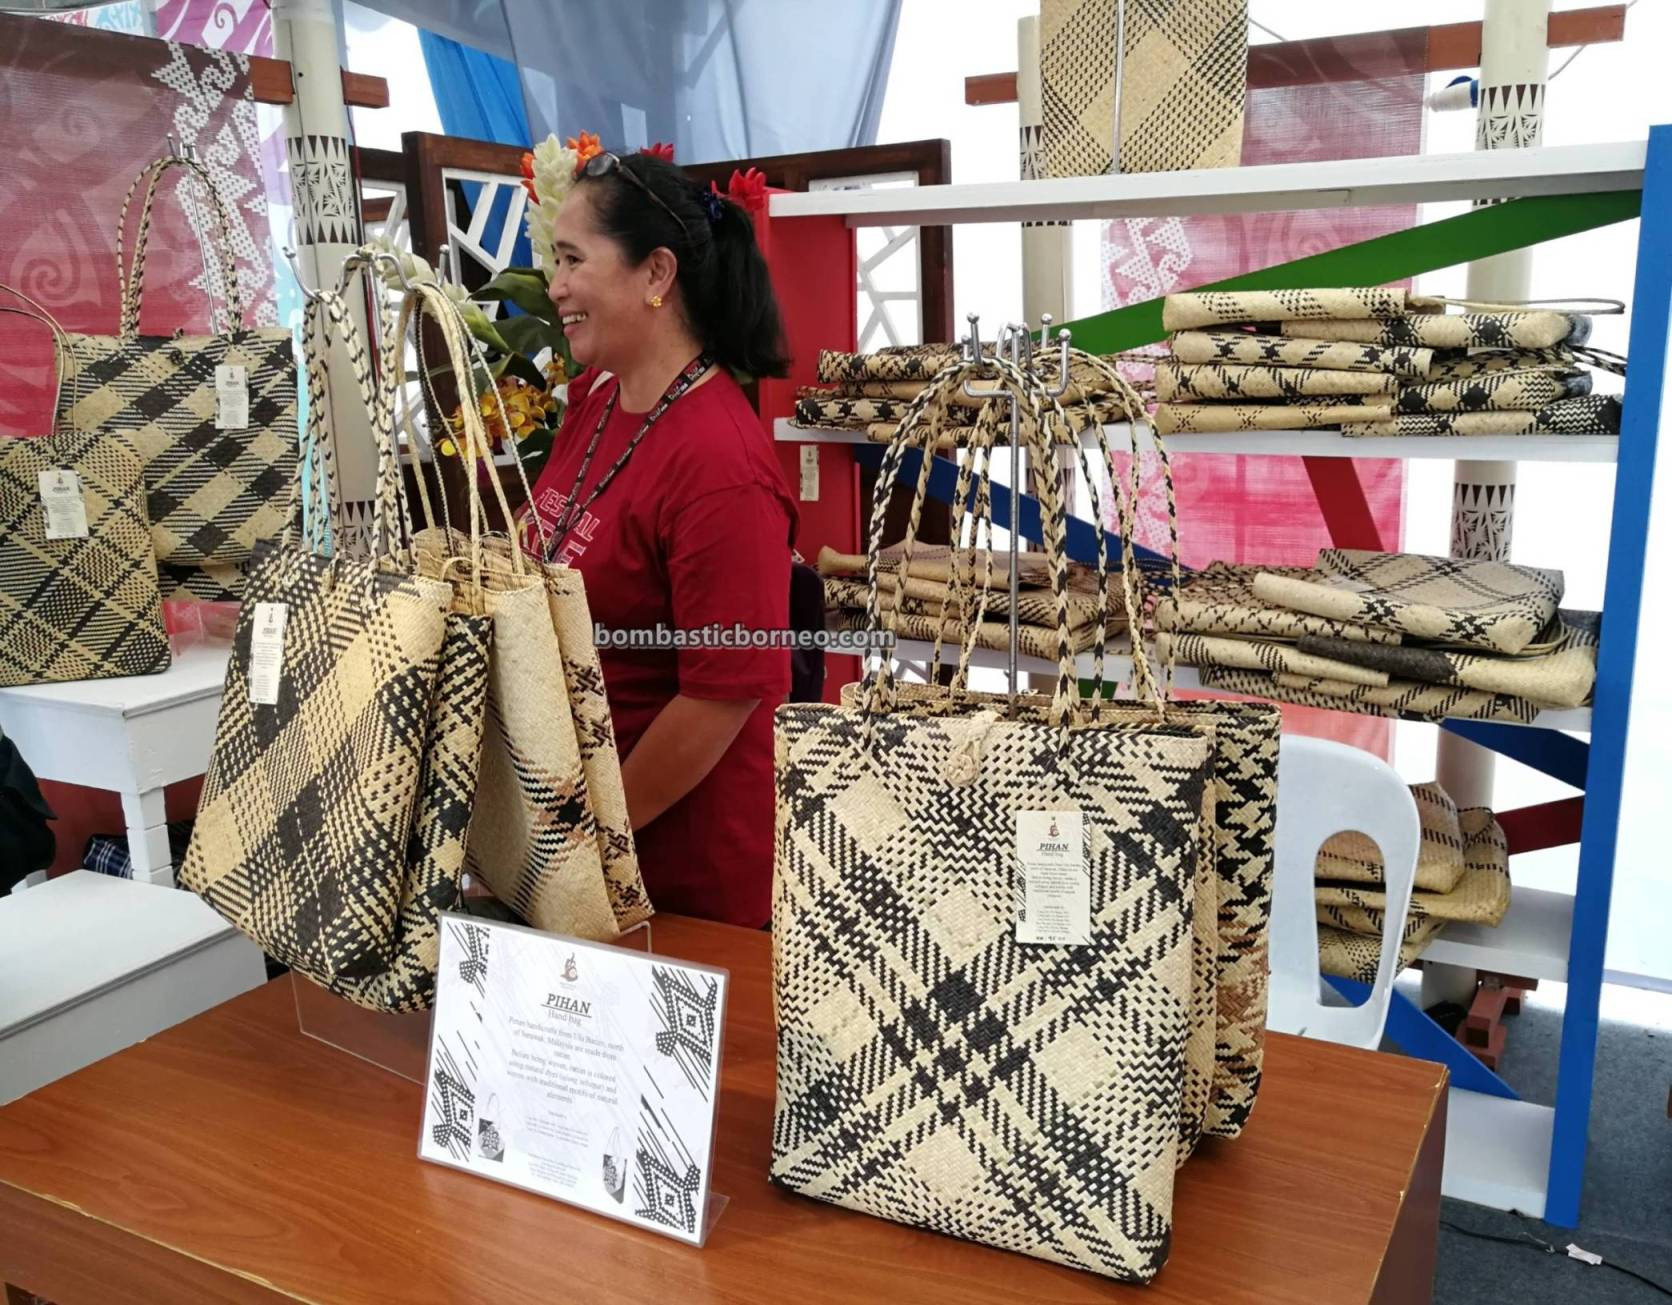 Dayak, handicrafts exhibitions, handmade Basketry, rotan, souvenir, Penan, Kraftangan Malaysia, Borneo, Kuching Waterfront, Tourism, tourist attraction, travel guide, weaving, 婆罗洲原住民, 藤制手工艺品展览,